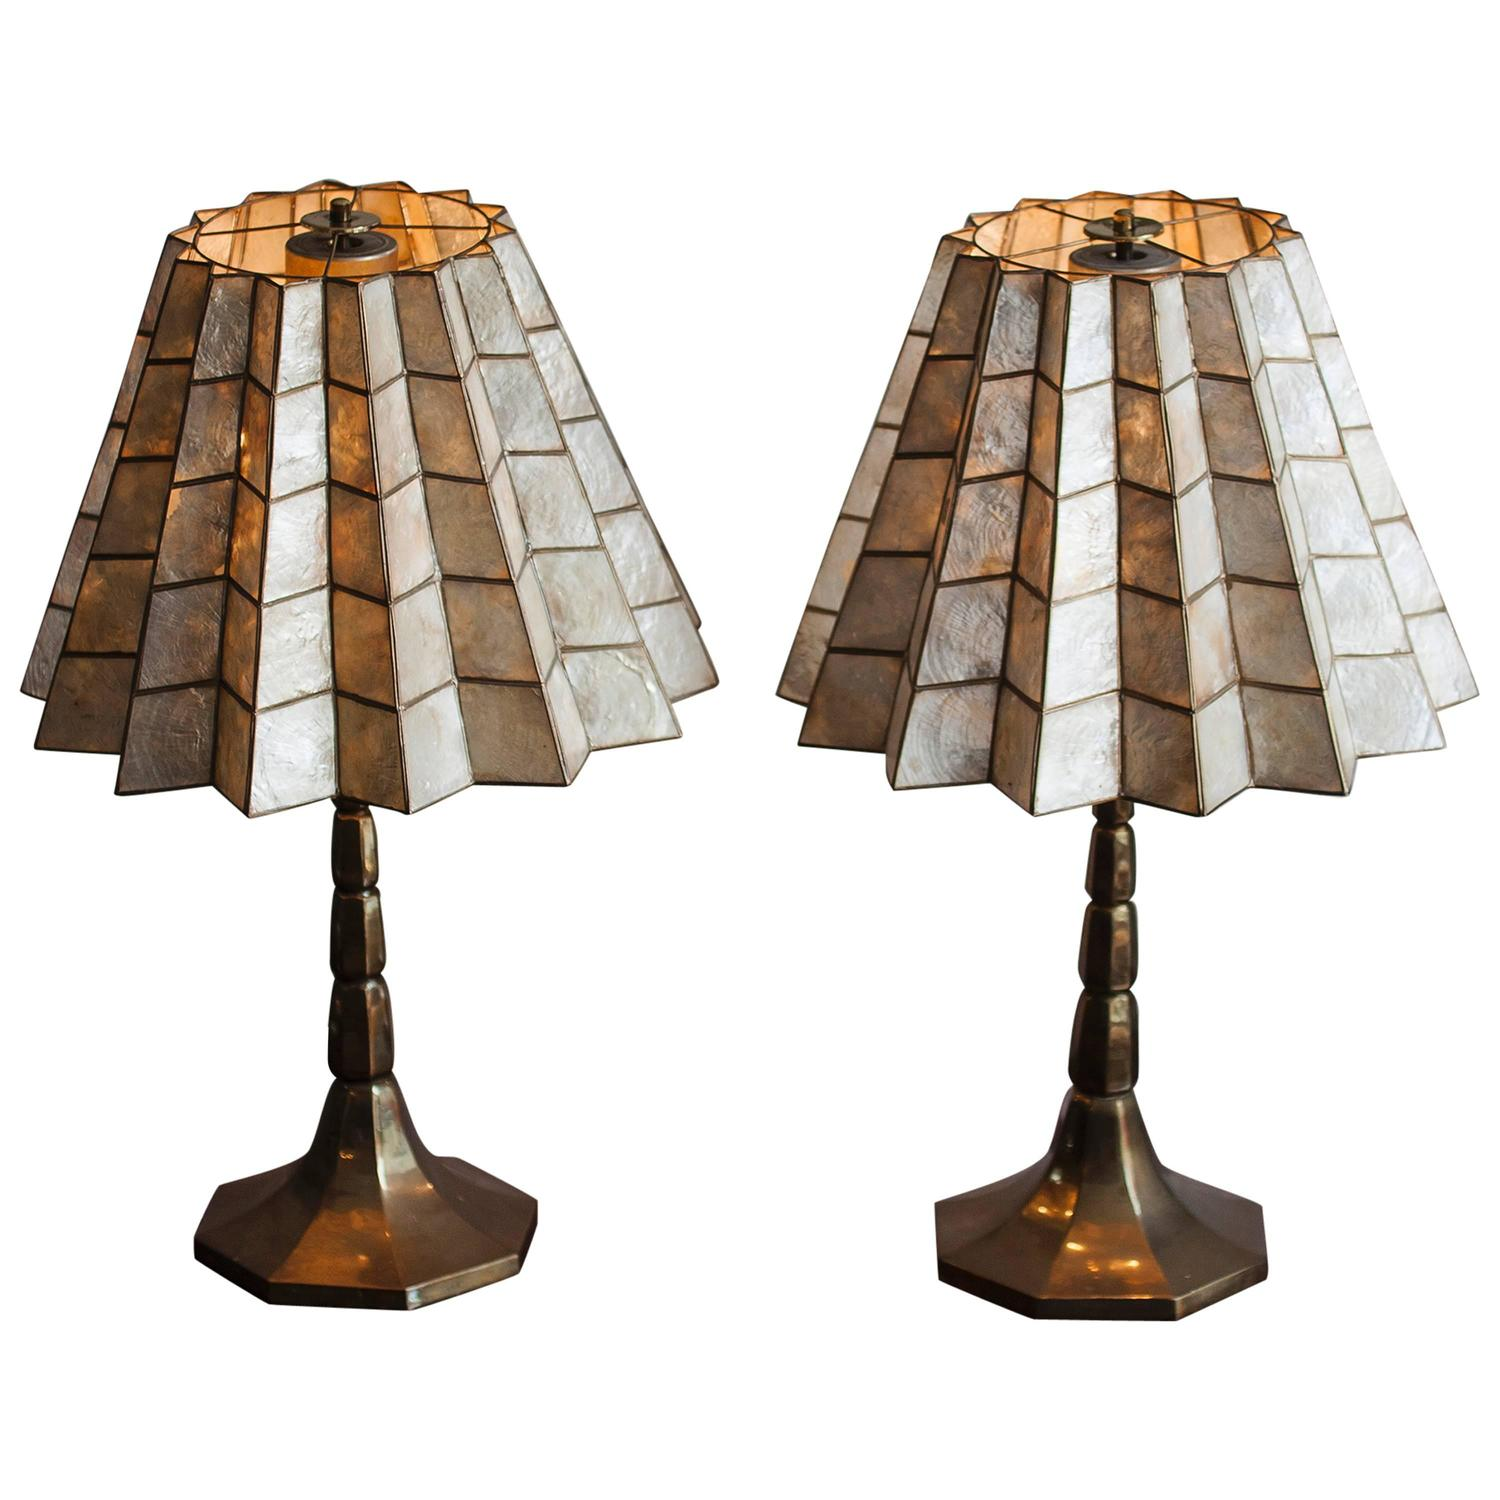 mother of pearl table lamps italy 1973 at 1stdibs. Black Bedroom Furniture Sets. Home Design Ideas